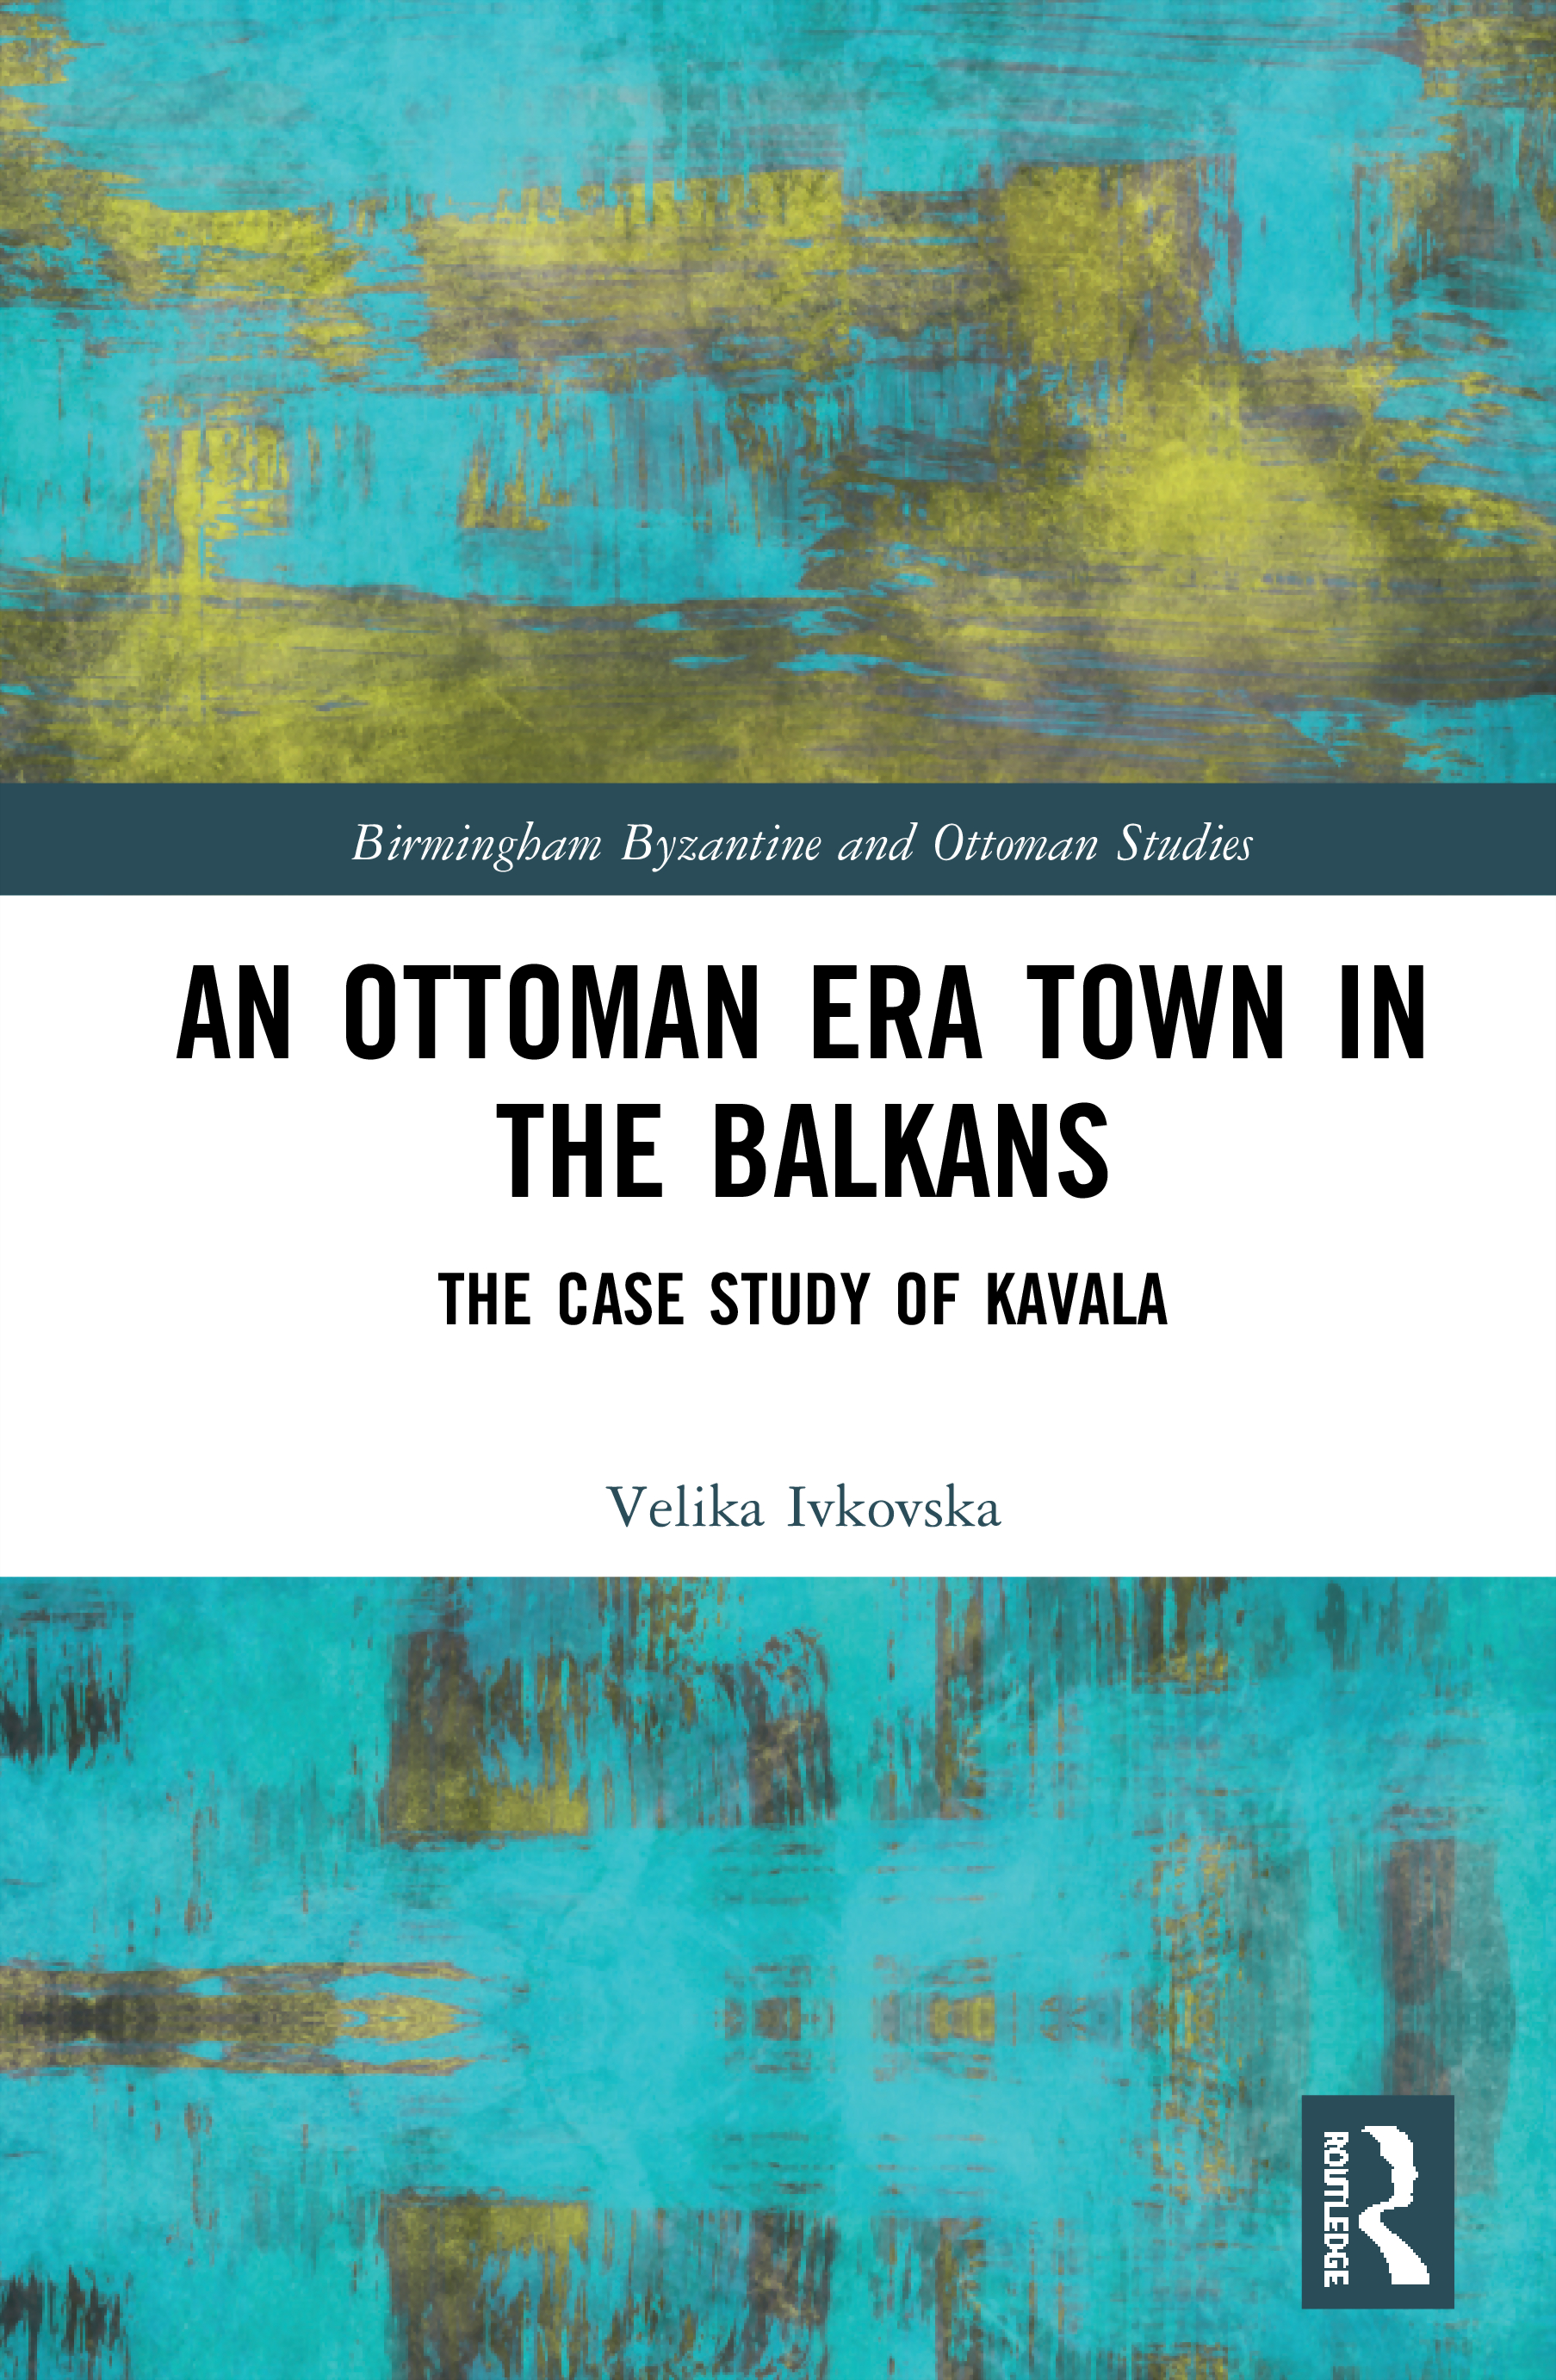 An Ottoman Era Town in the Balkans: The Case Study of Kavala, 1st Edition (Hardback) book cover